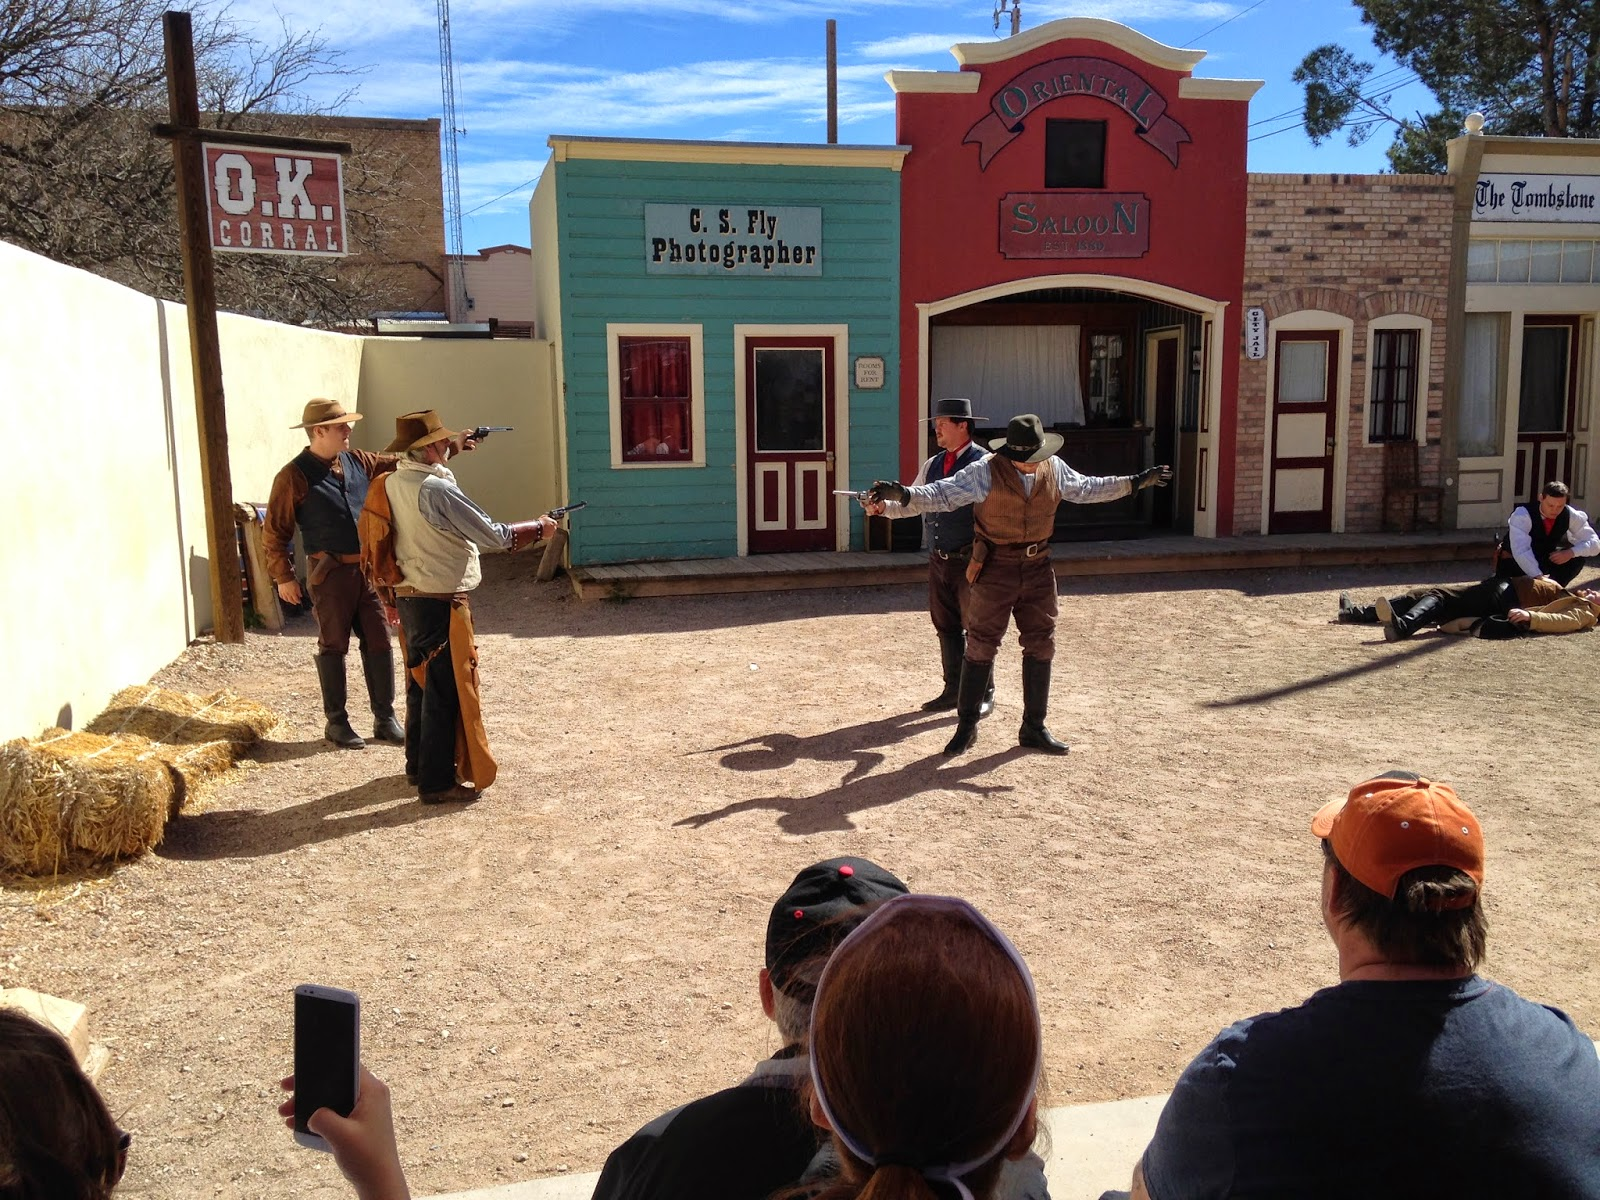 Kind S Retirement Travels Tombstone Az And Ok Corral